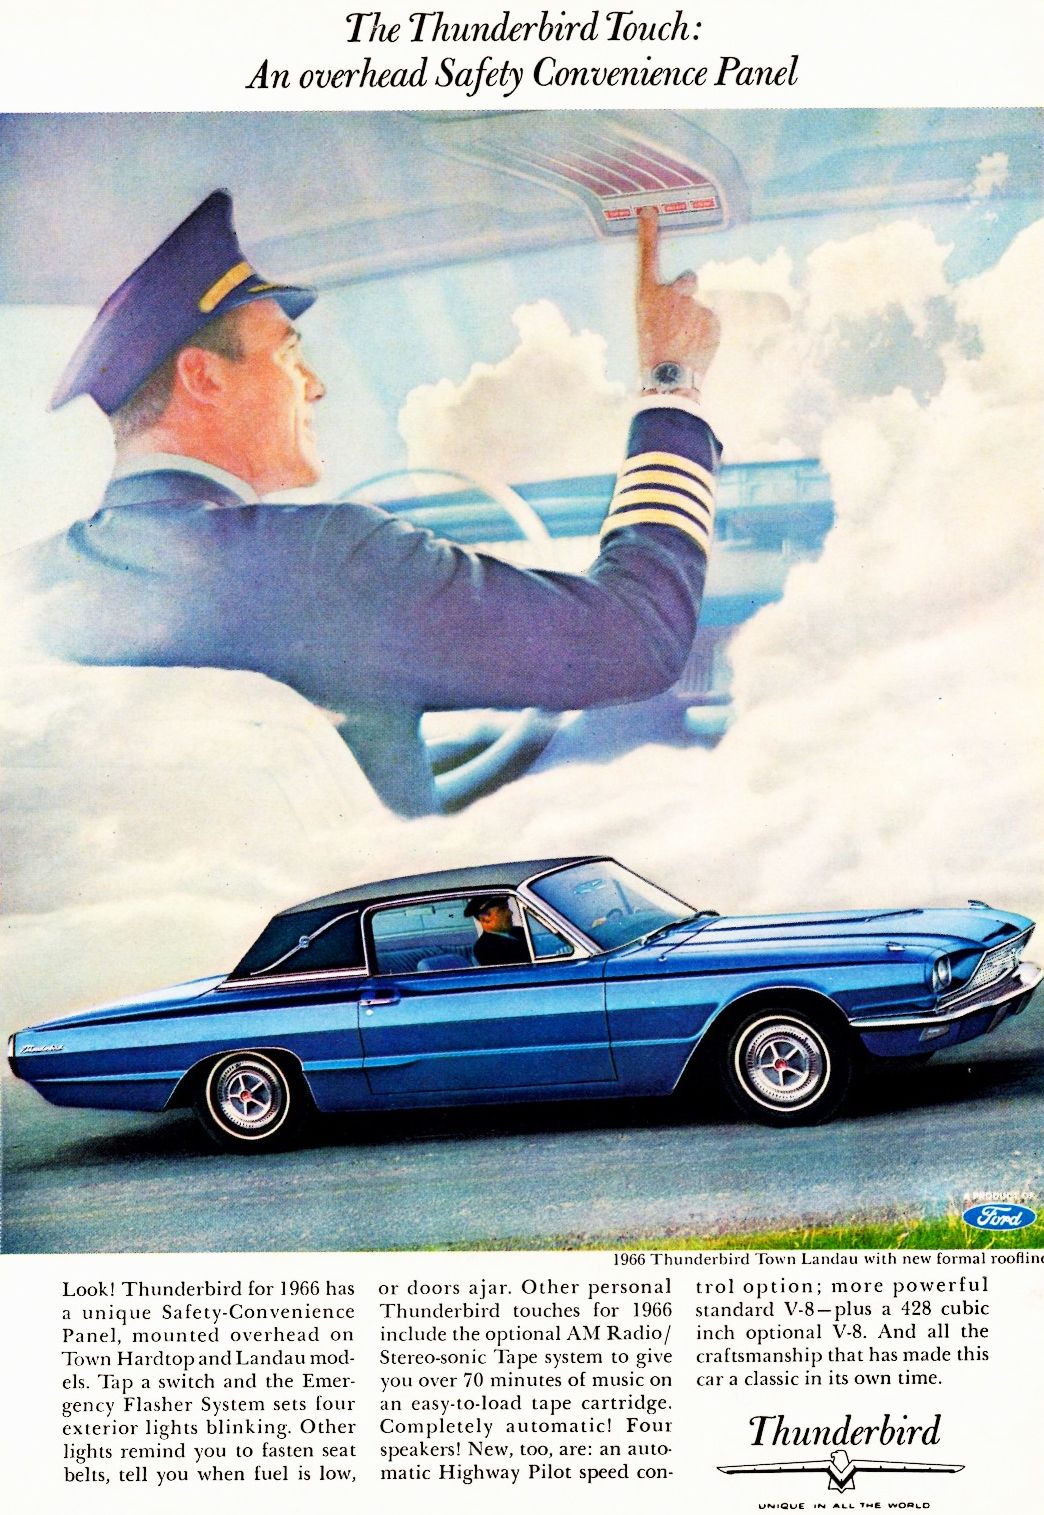 1966 Thunderbird Ad I Hunk This Might Be Why My Dad Got One 1964 Ford Dash Pad